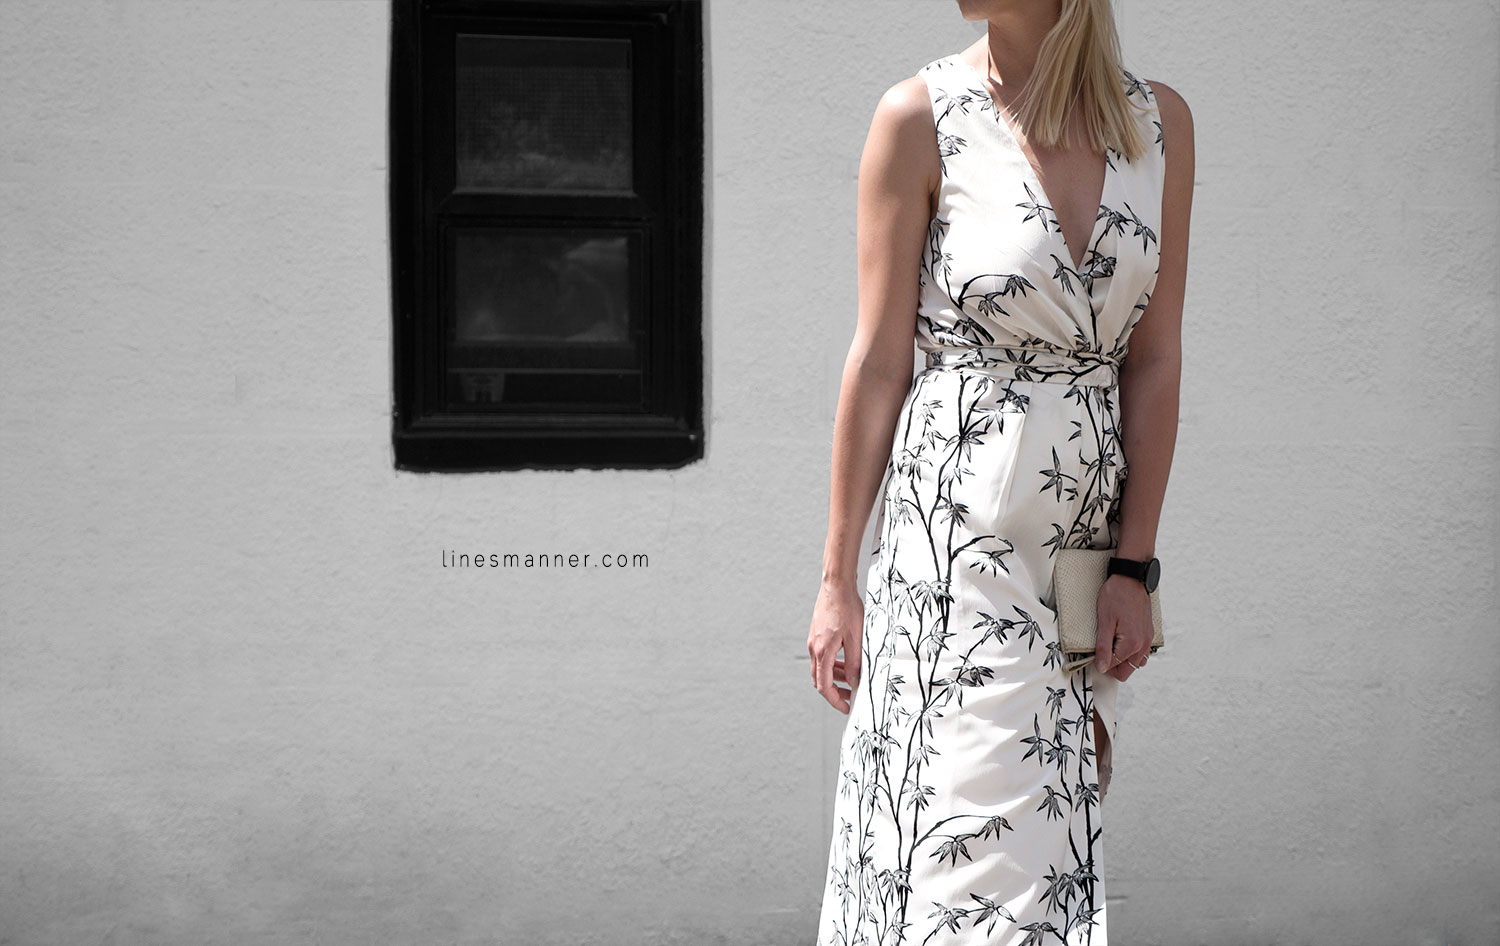 Lines-Manner-Minimal-Simplicity-Essentials-Bon_Label-Neon_Rose_Print-Bamboo-Slit_Dress-Wrap_Dress-Maxi_Dress-Fesh-Black_and_White-Casual-Elegant-Bright-Monochrome-10